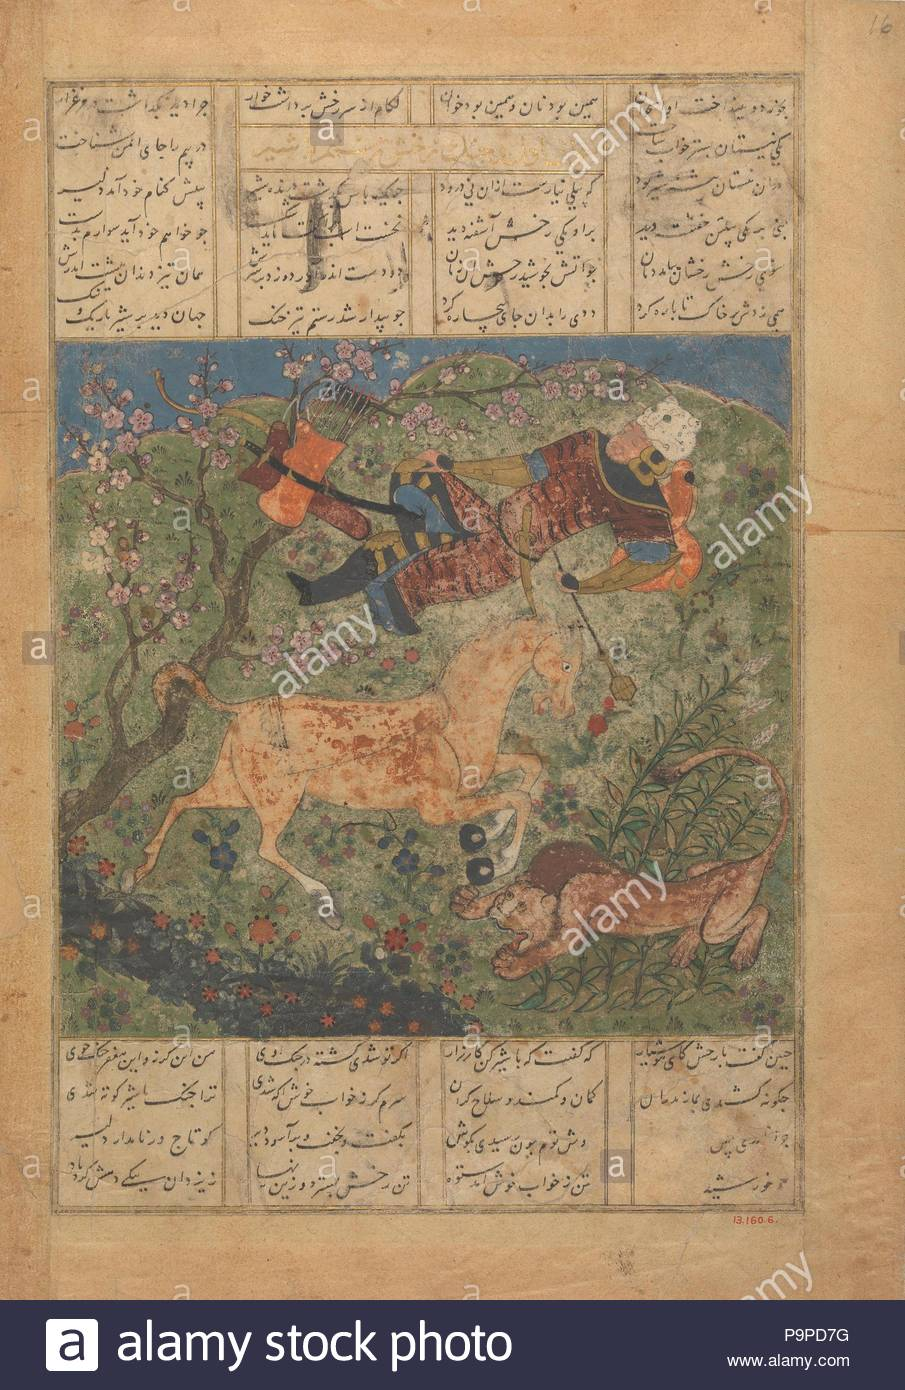 'Rustam Saved by his Horse Rakhsh from an Attacking Lion', Folio from a Shahnama (Book of Kings), late 15th century, Attributed to India, Ink, opaque watercolor, and gold on paper, Page: H. 12 in. (30.5 cm), Codices. - Stock Image